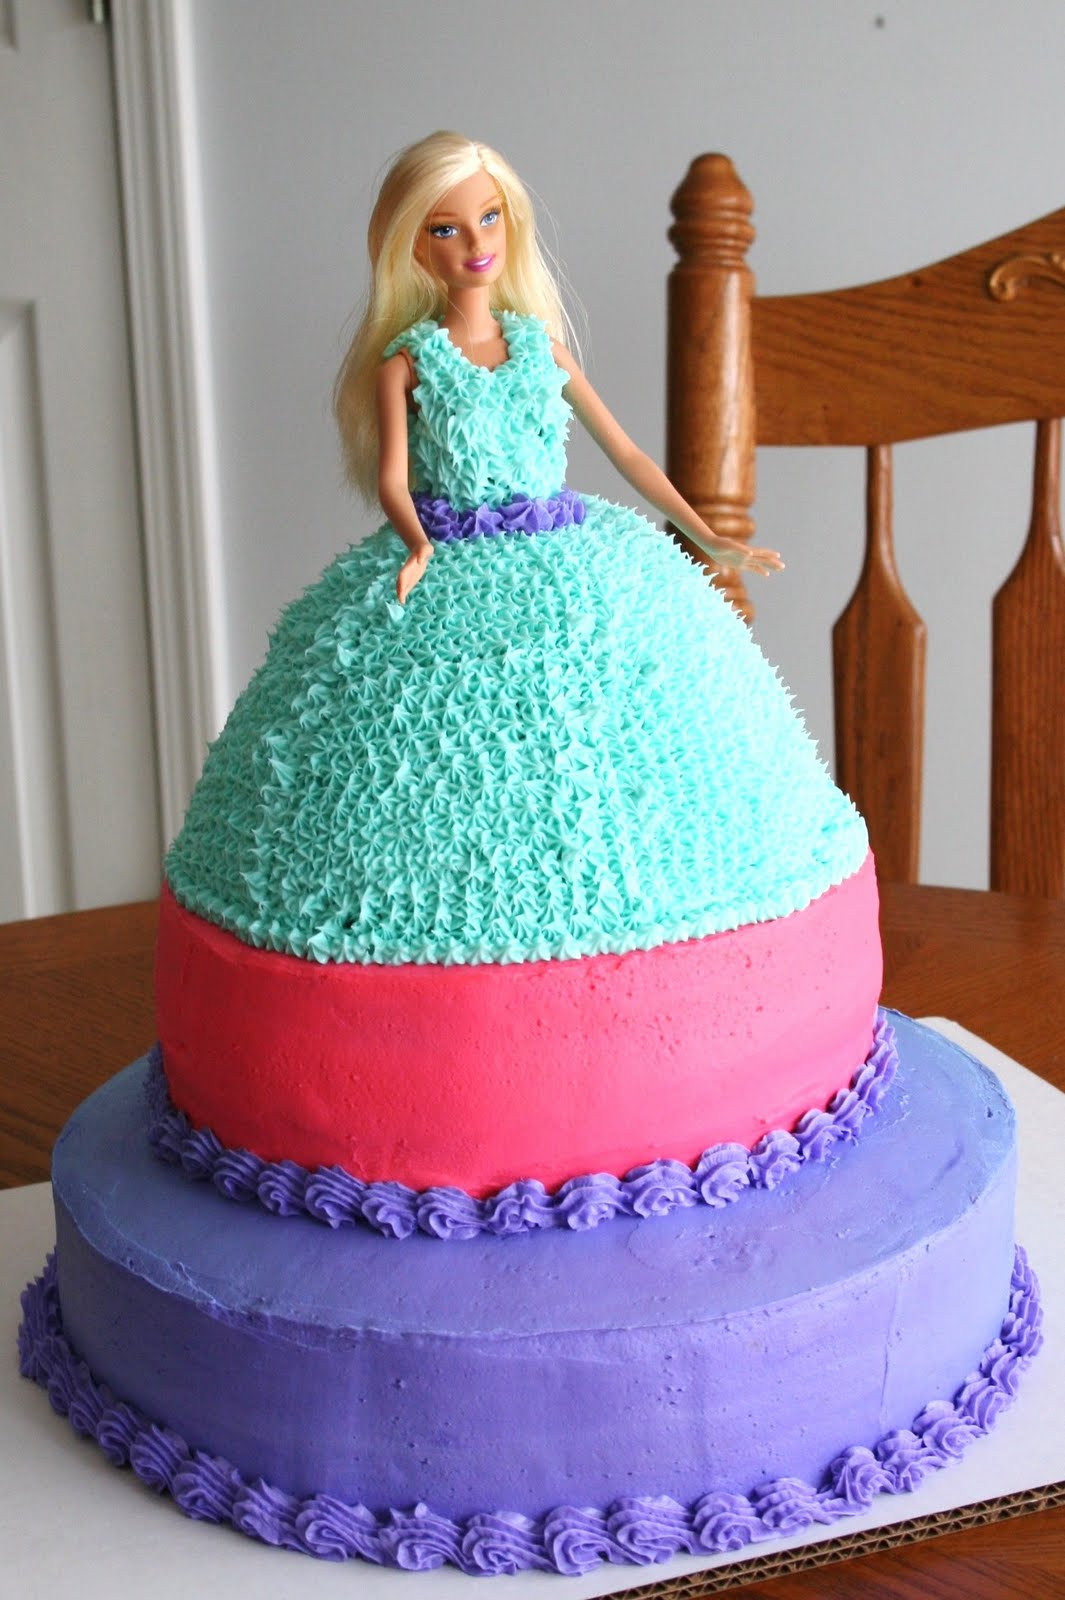 I Made My Niece Chloes 5th Birthday Cake This Year Barbie What Little Girl Doesnt At Some Time Or Another Want A White Tinted Icing